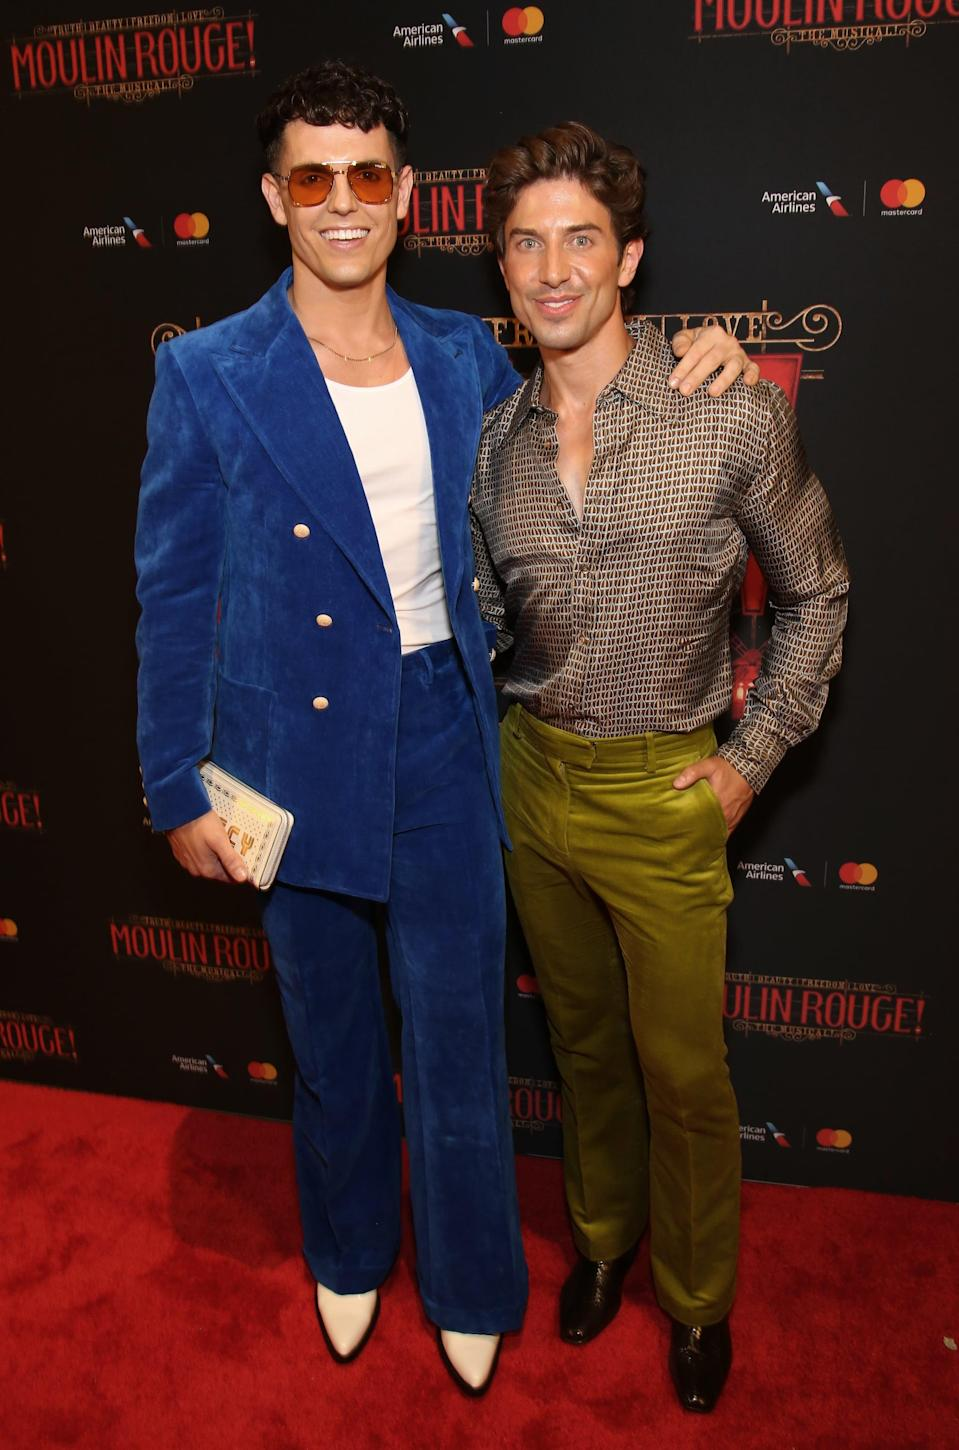 """<p>In 2010, Adams and Brown were two up-and-coming stars in <strong>Priscilla, Queen of the Desert</strong>, and there was much more than glitter flying between them. <a href=""""http://www.playbill.com/article/two-of-broadways-hottest-dancers-reveal-their-love-story"""" class=""""link rapid-noclick-resp"""" rel=""""nofollow noopener"""" target=""""_blank"""" data-ylk=""""slk:The couple recounted their meeting"""">The couple recounted their meeting</a> to <strong>Playbill</strong> in 2016, sharing that the flirty nature of the show helped them connect as just a """"fun"""" thing at first, before it blossomed into something more. """"I didn't put that much thought into whether or not it would last. I was just like, """"This is fun,"""" so the fact that it has lasted...is the benefit of that,"""" Brown said. Adams most recently was in the national tour of <strong>Falsettos</strong>, while Brown is currently a dancer in <strong>Moulin Rouge</strong>.</p>"""